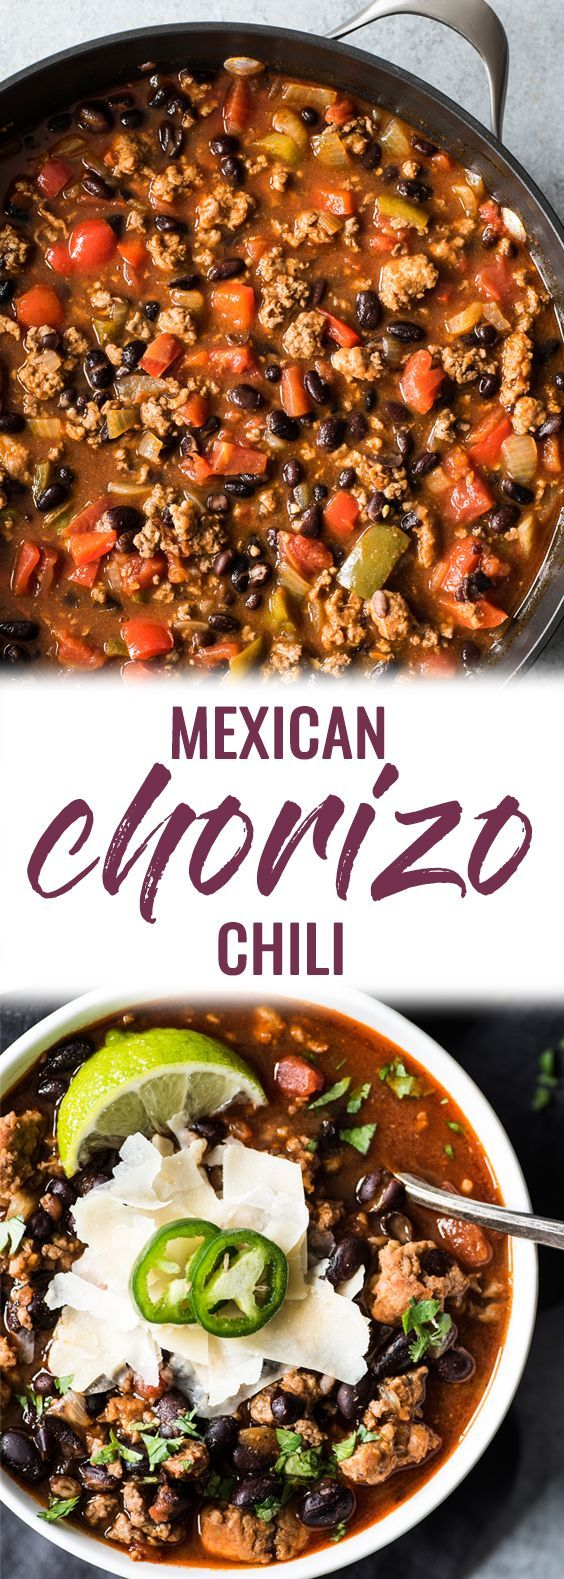 This Mexican Chorizo Chili recipe  is a warm and comforting one-pot meal perfect for the fall and winter months!